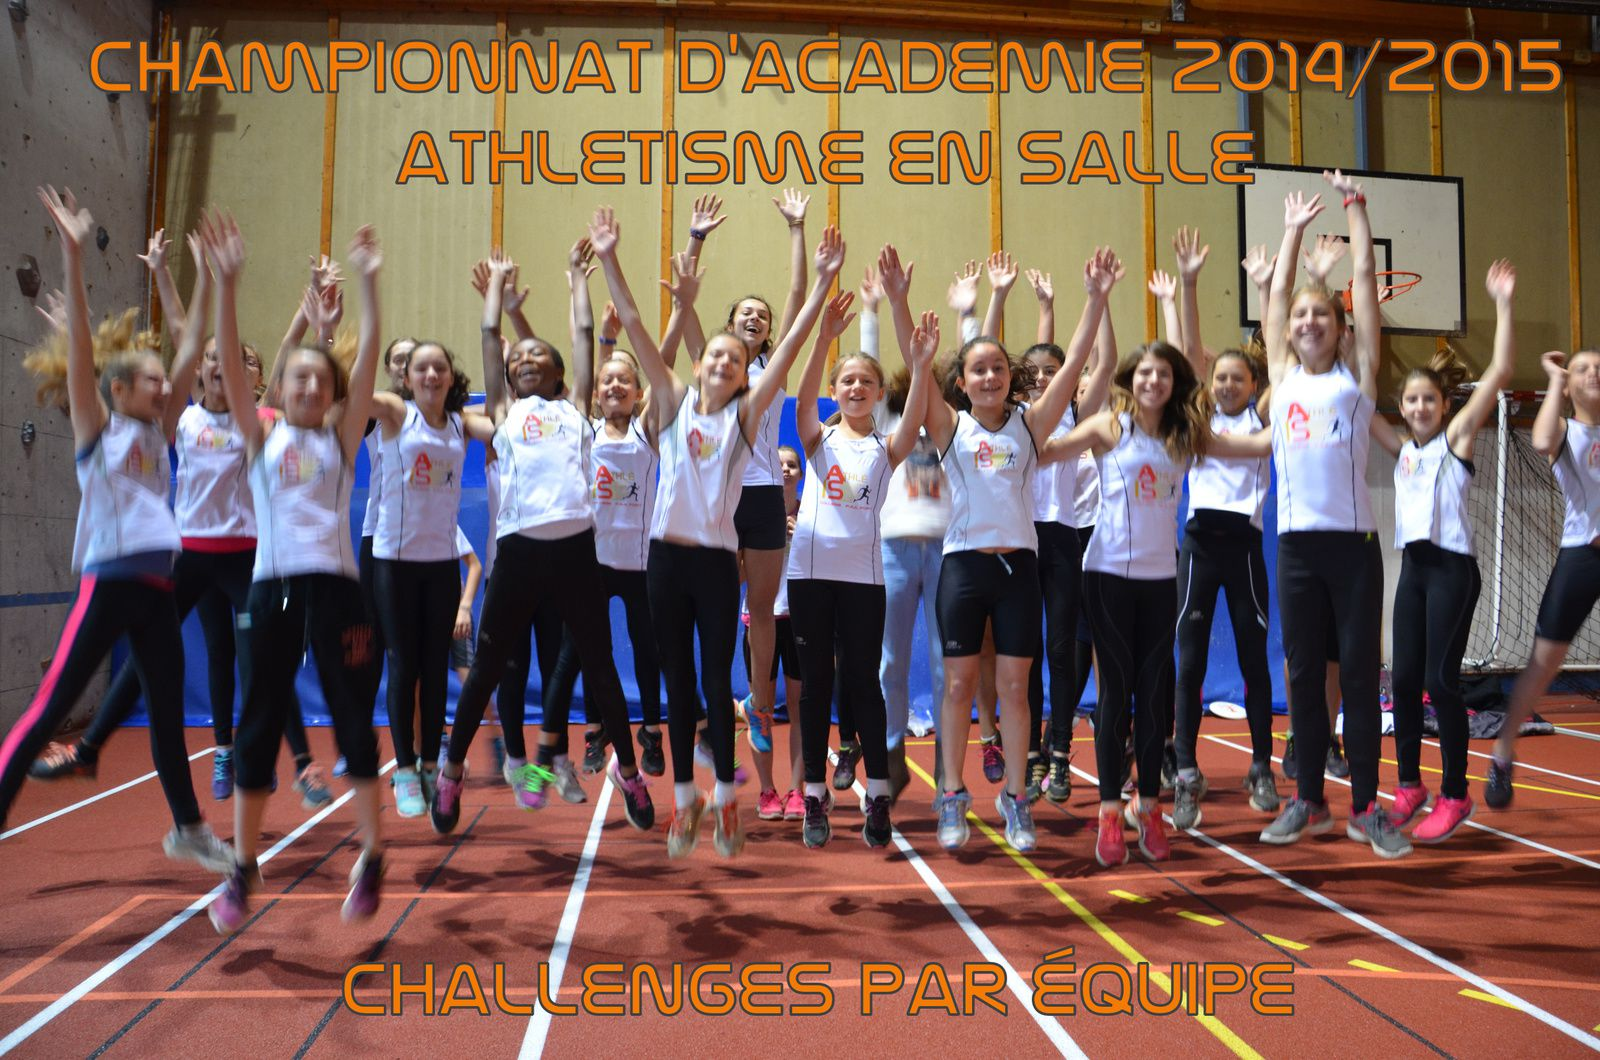 CHAMPIONNAT D'ACADEMIE ATHLETISME INDOOR 2014/2015